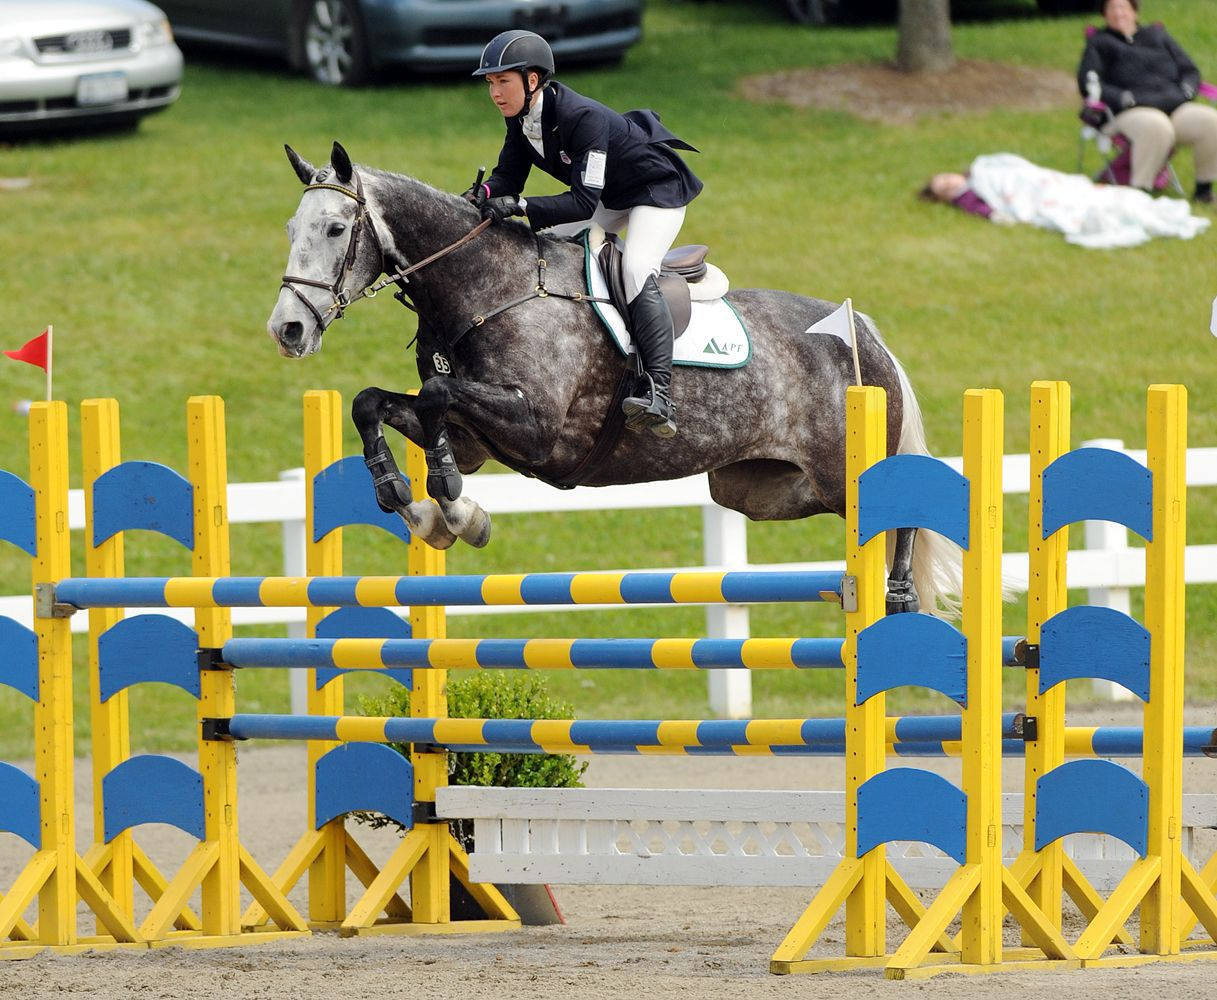 equestrian show jumping Manchester summer festival july 10 - 15 manchester classic horse show july  17 - 22 valley classic horse show july 24 - 29 manchester & the mountains.